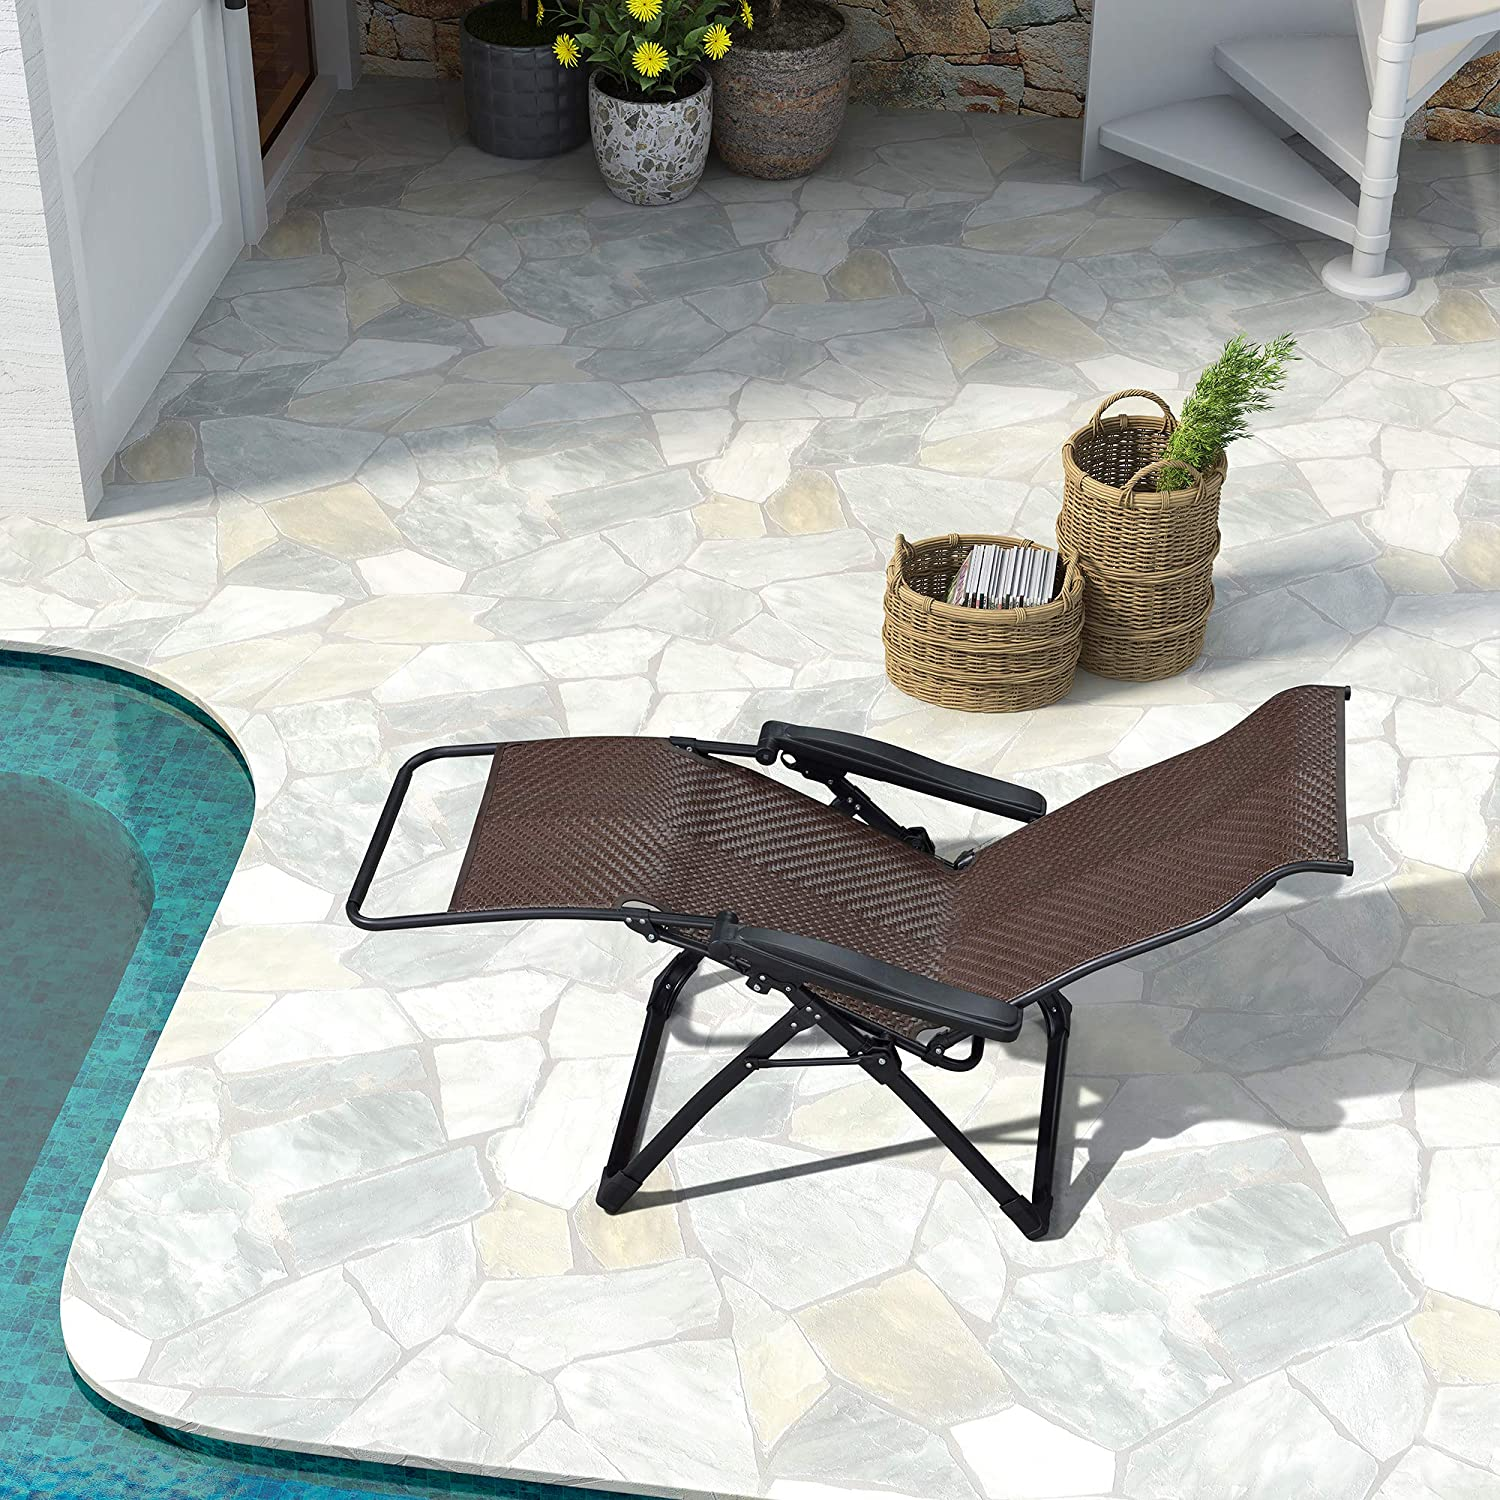 PURPLE LEAF Outdoor Zero Gravity Recliner Chair Patio Wicker Rattan Lounge Chair Outdoor Folding Pool Beach Camping Lawn Chair for Indoor Office Sunbathing Deck Beige